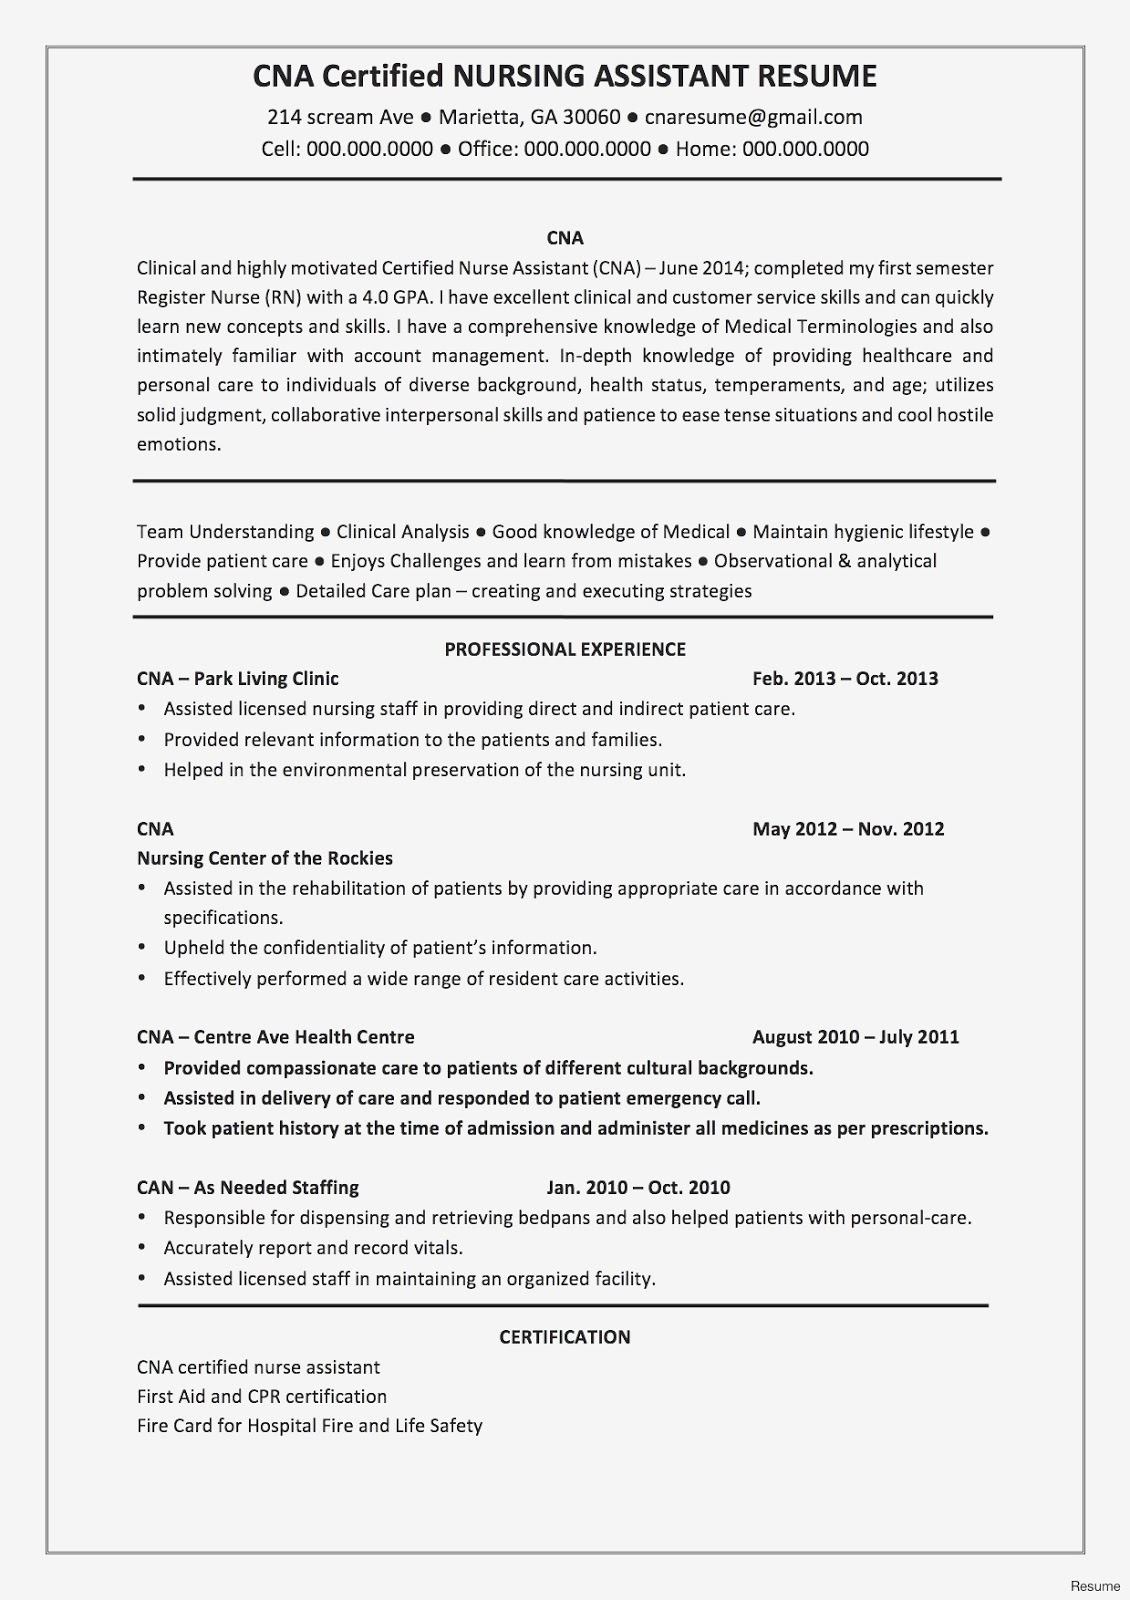 Assistant Nurse Manager Resume 2019 Resume Templates ...